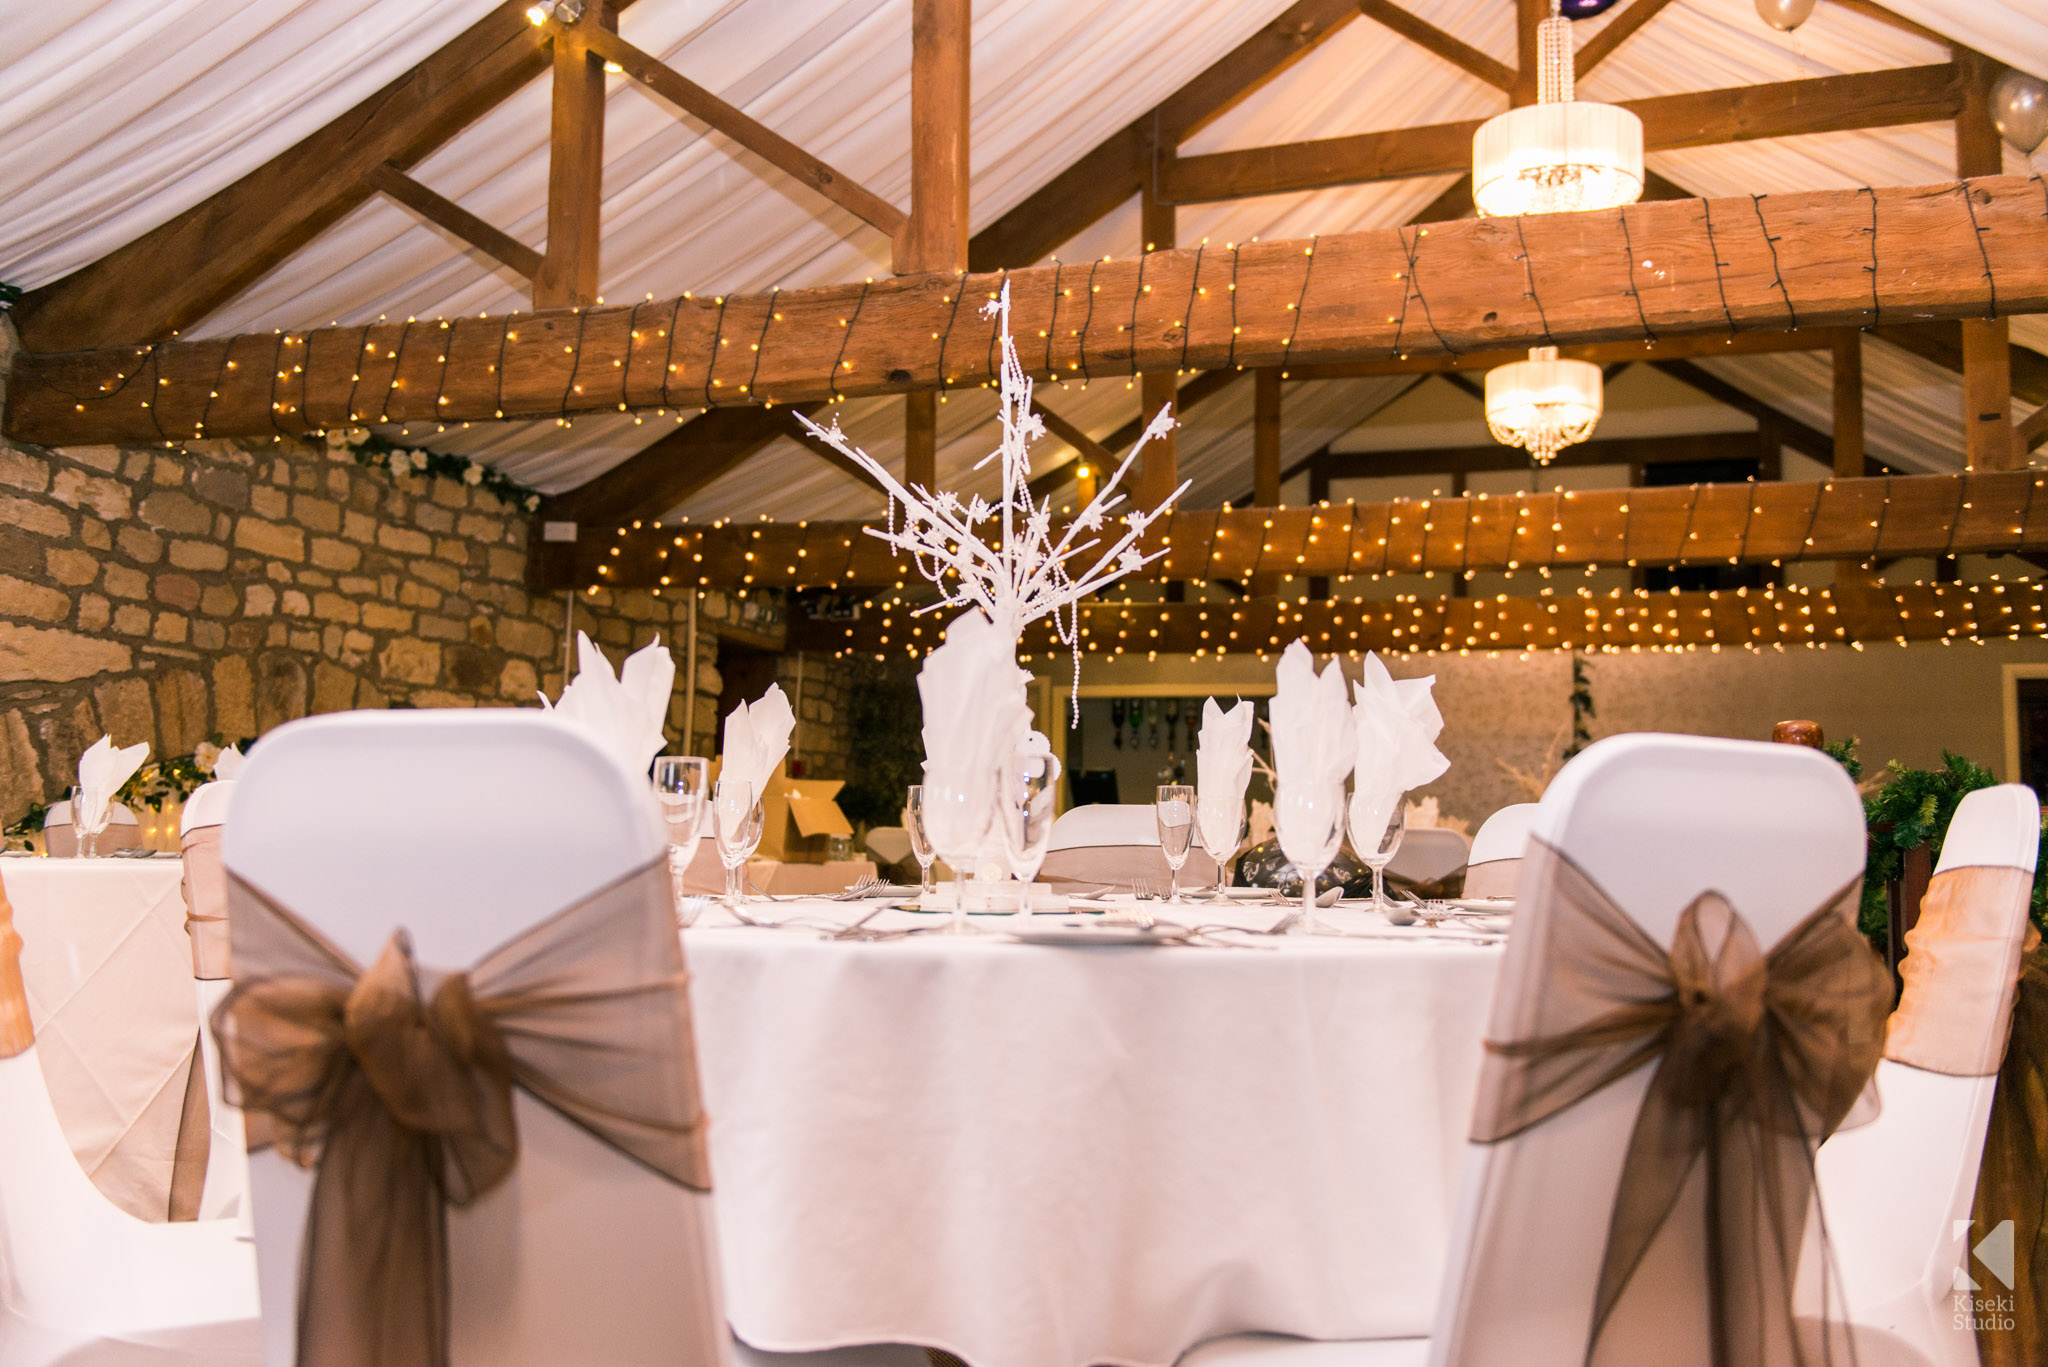 Wedding venue decorations at The Old Barn